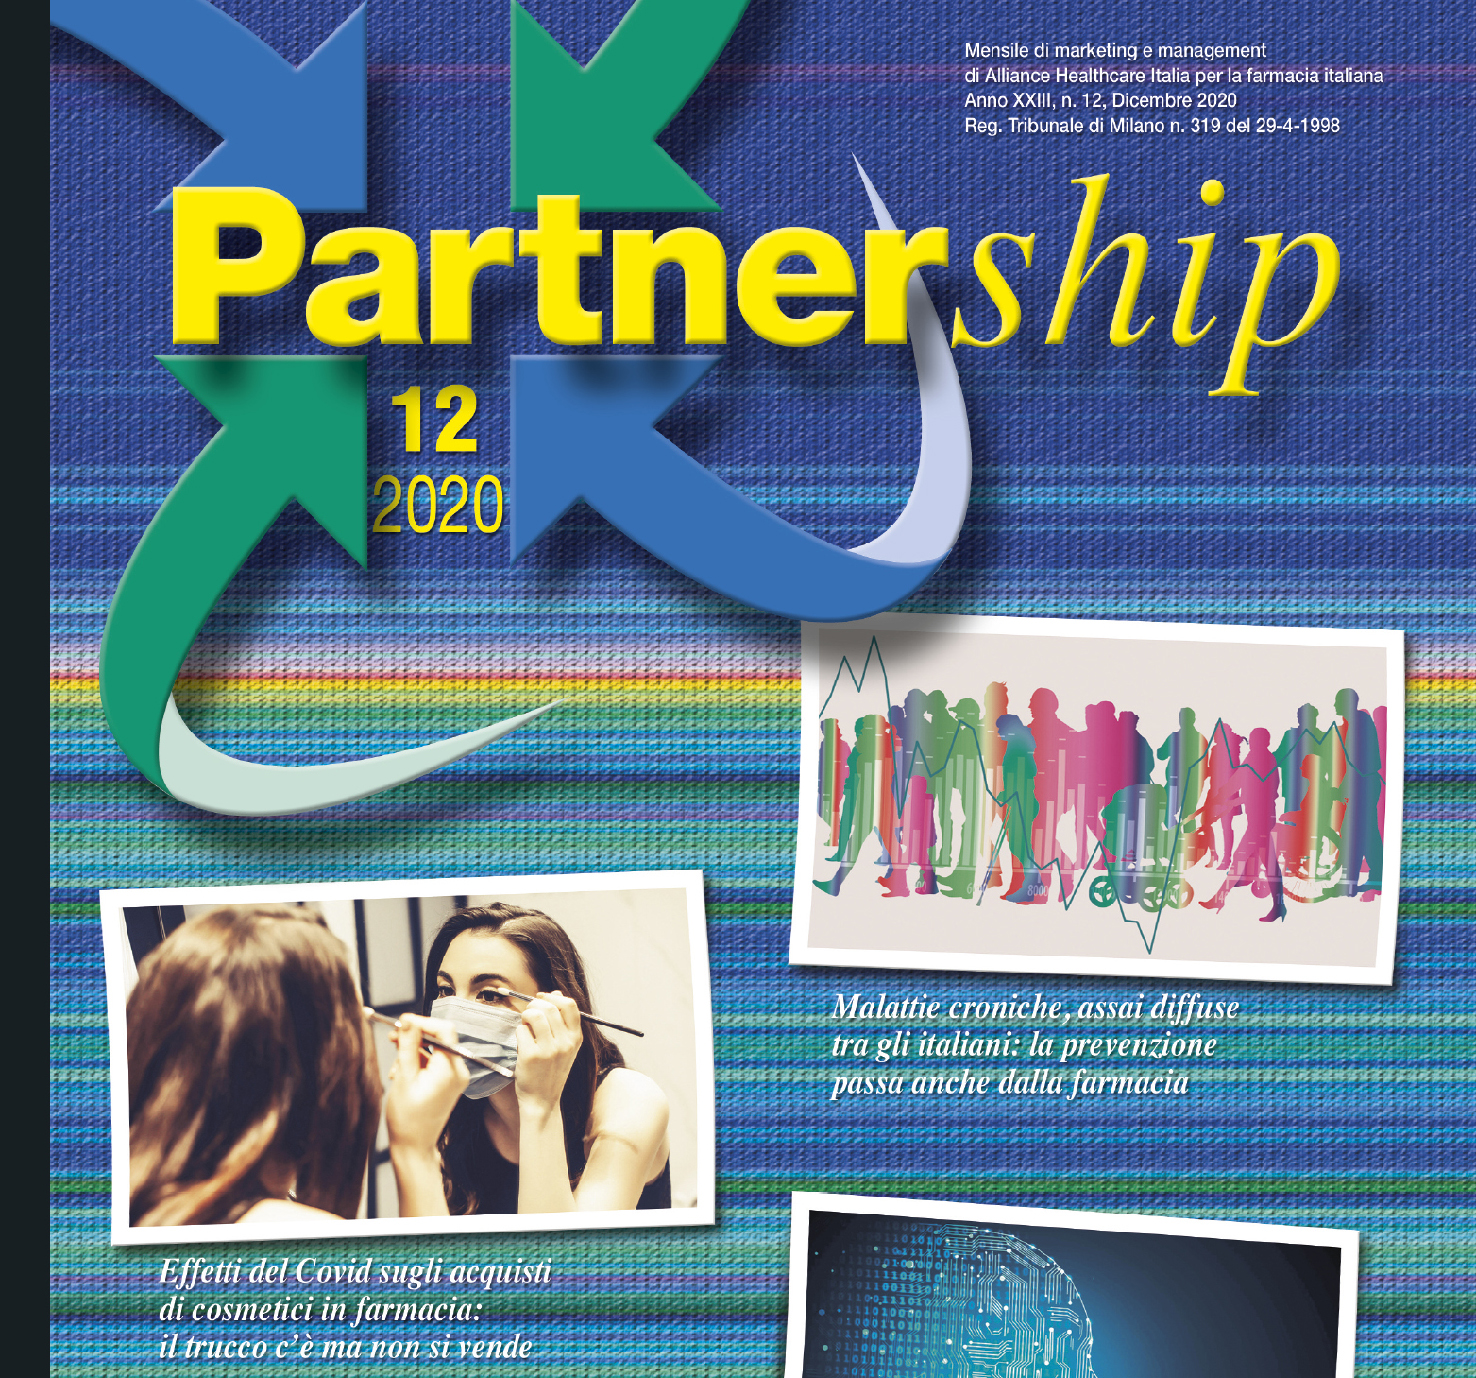 Partnership n.12